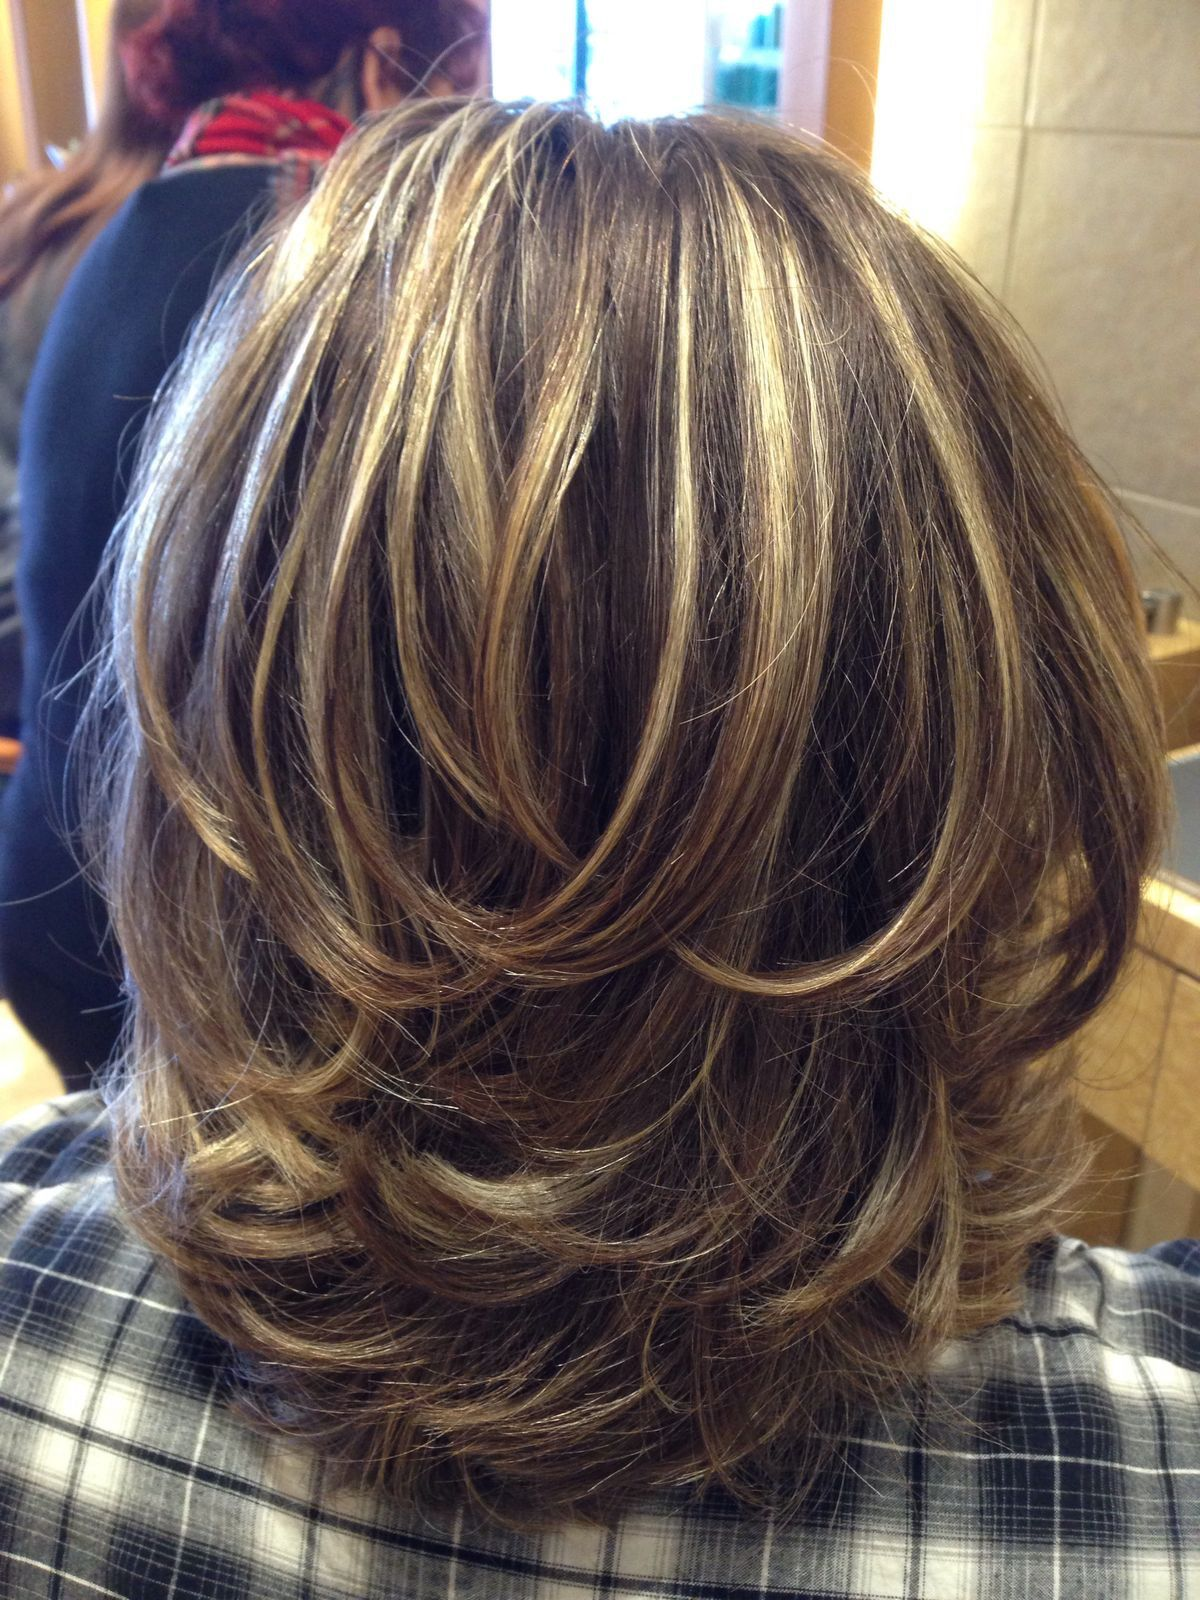 Fine Slice Hair Styles Haircuts For Medium Hair Layered Haircuts For Medium Hair